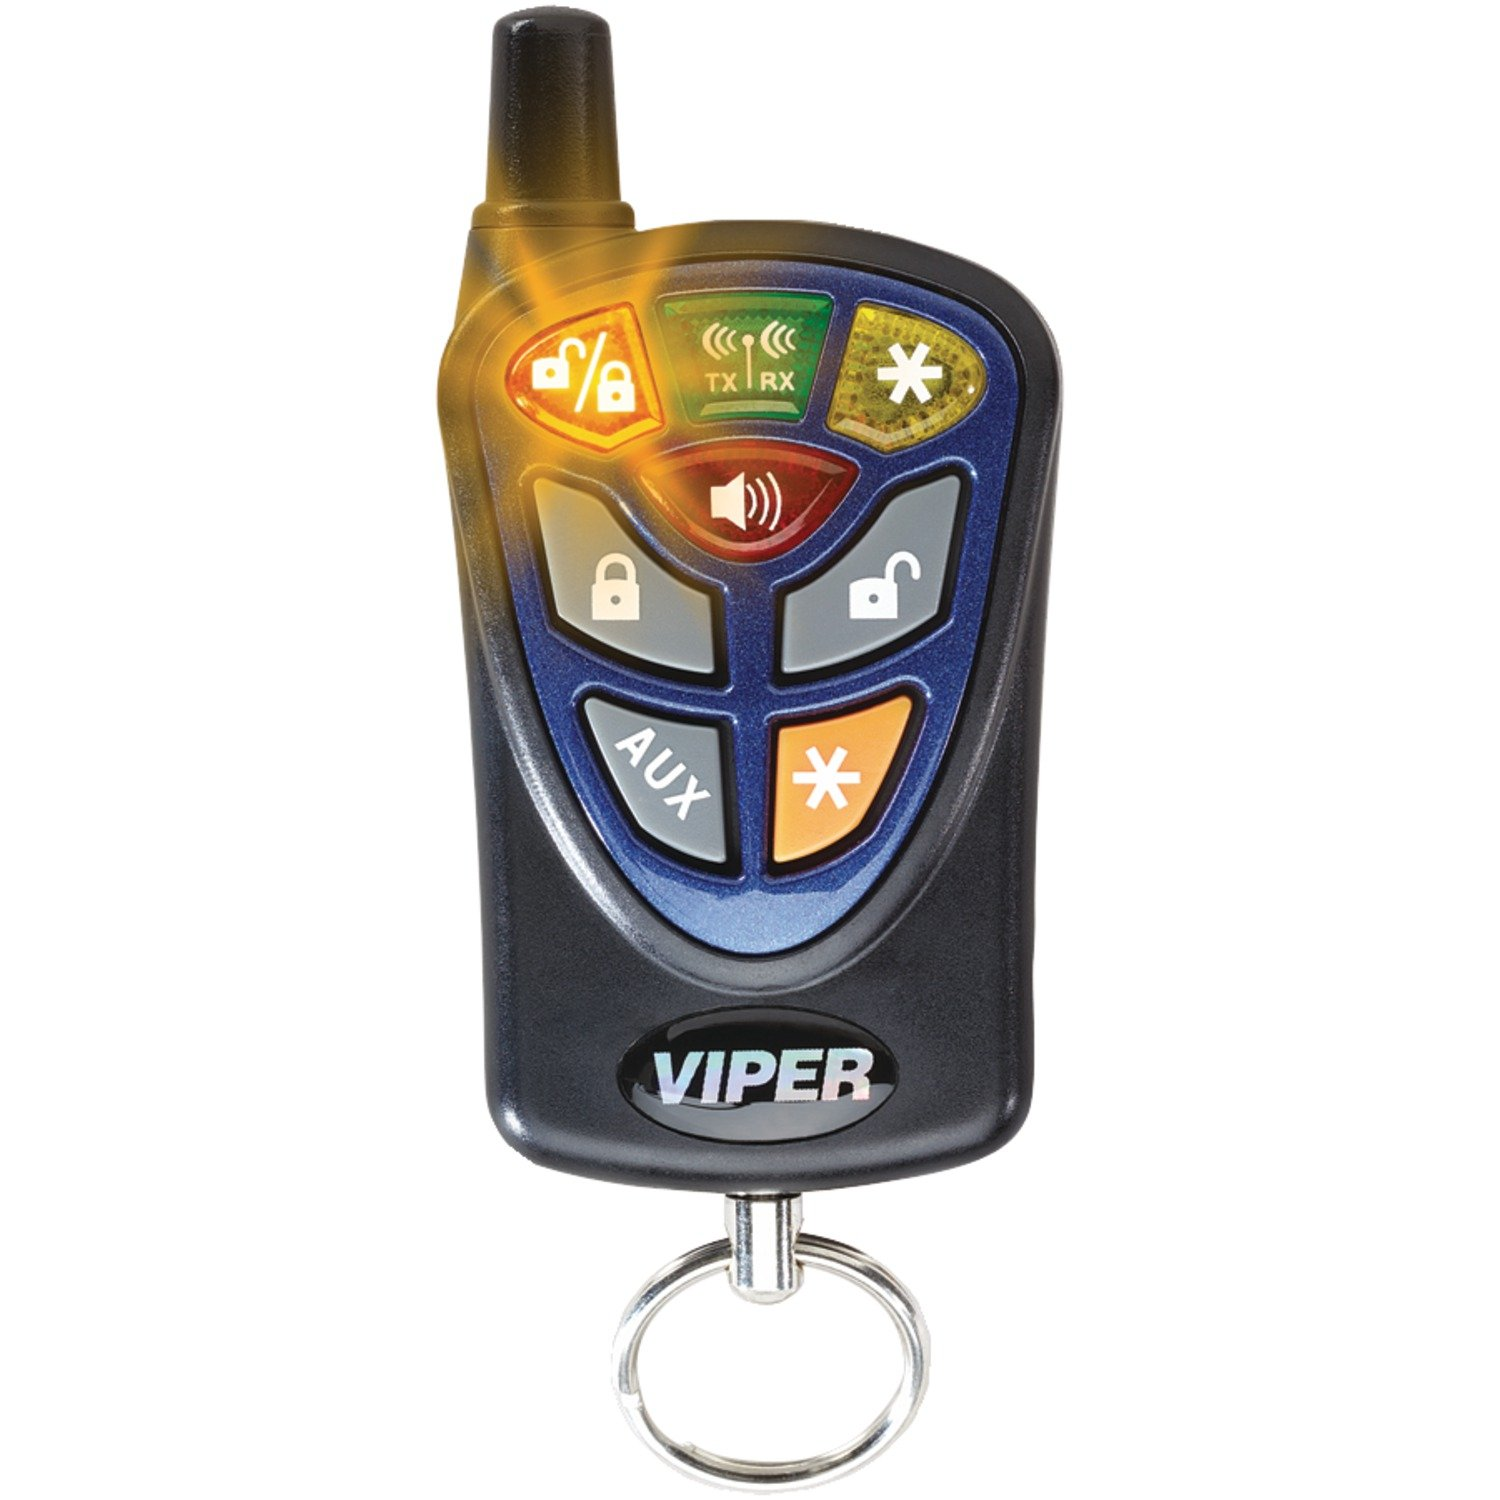 Viper LED 2-Way Remote, 488V